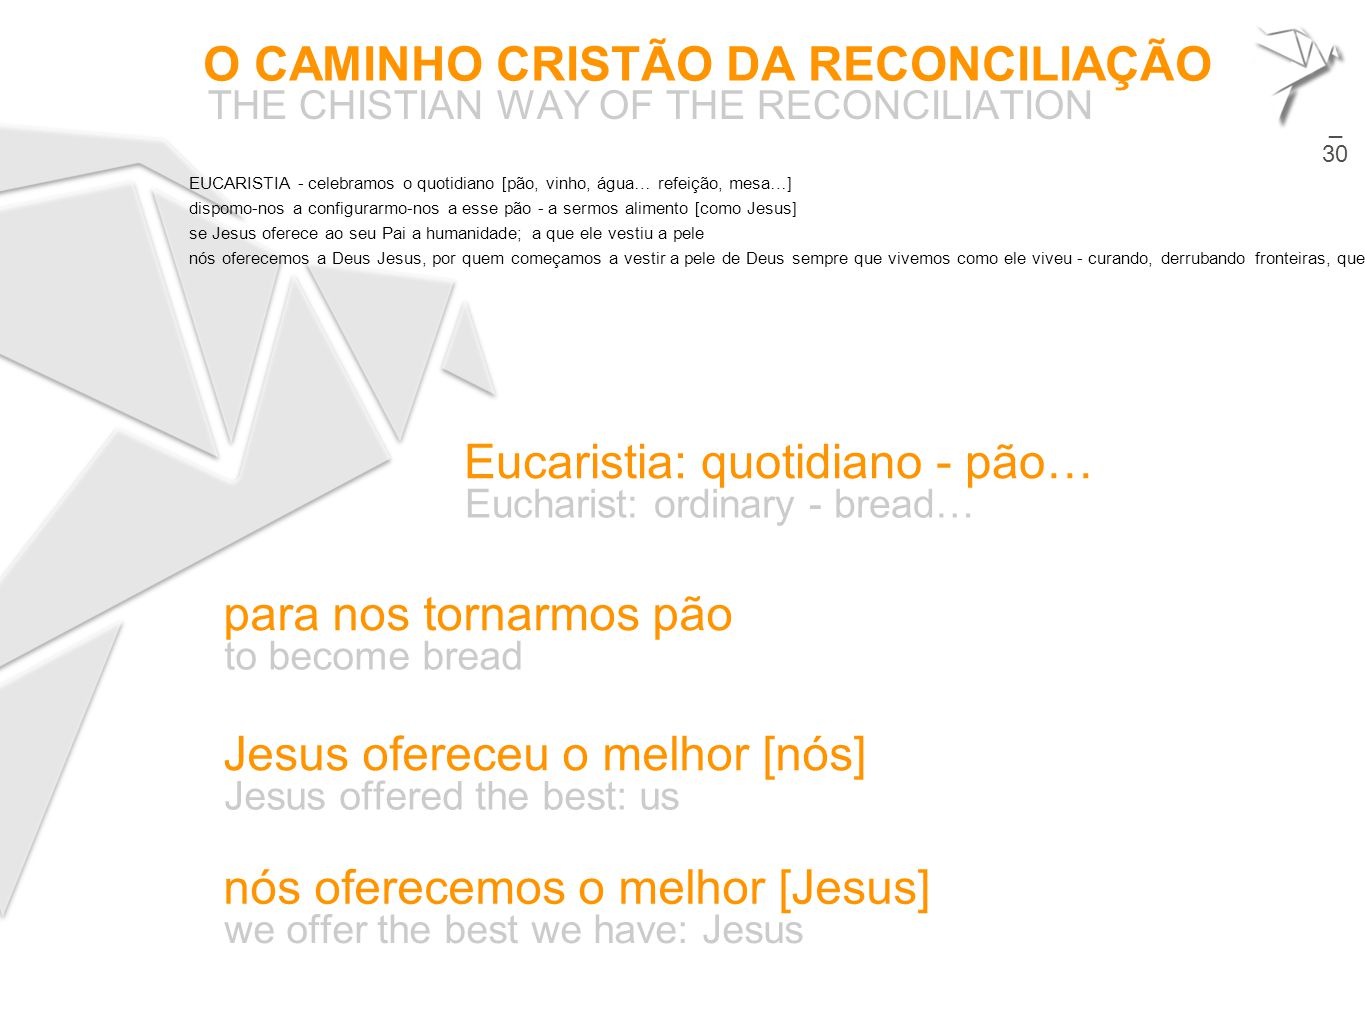 O CAMINHO CRISTÃO DA RECONCILIAÇÃO THE CHISTIAN WAY OF THE RECONCILIATION 21 Eucaristia: quotidiano - pão… Eucharist: ordinary - bread…  para nos tor